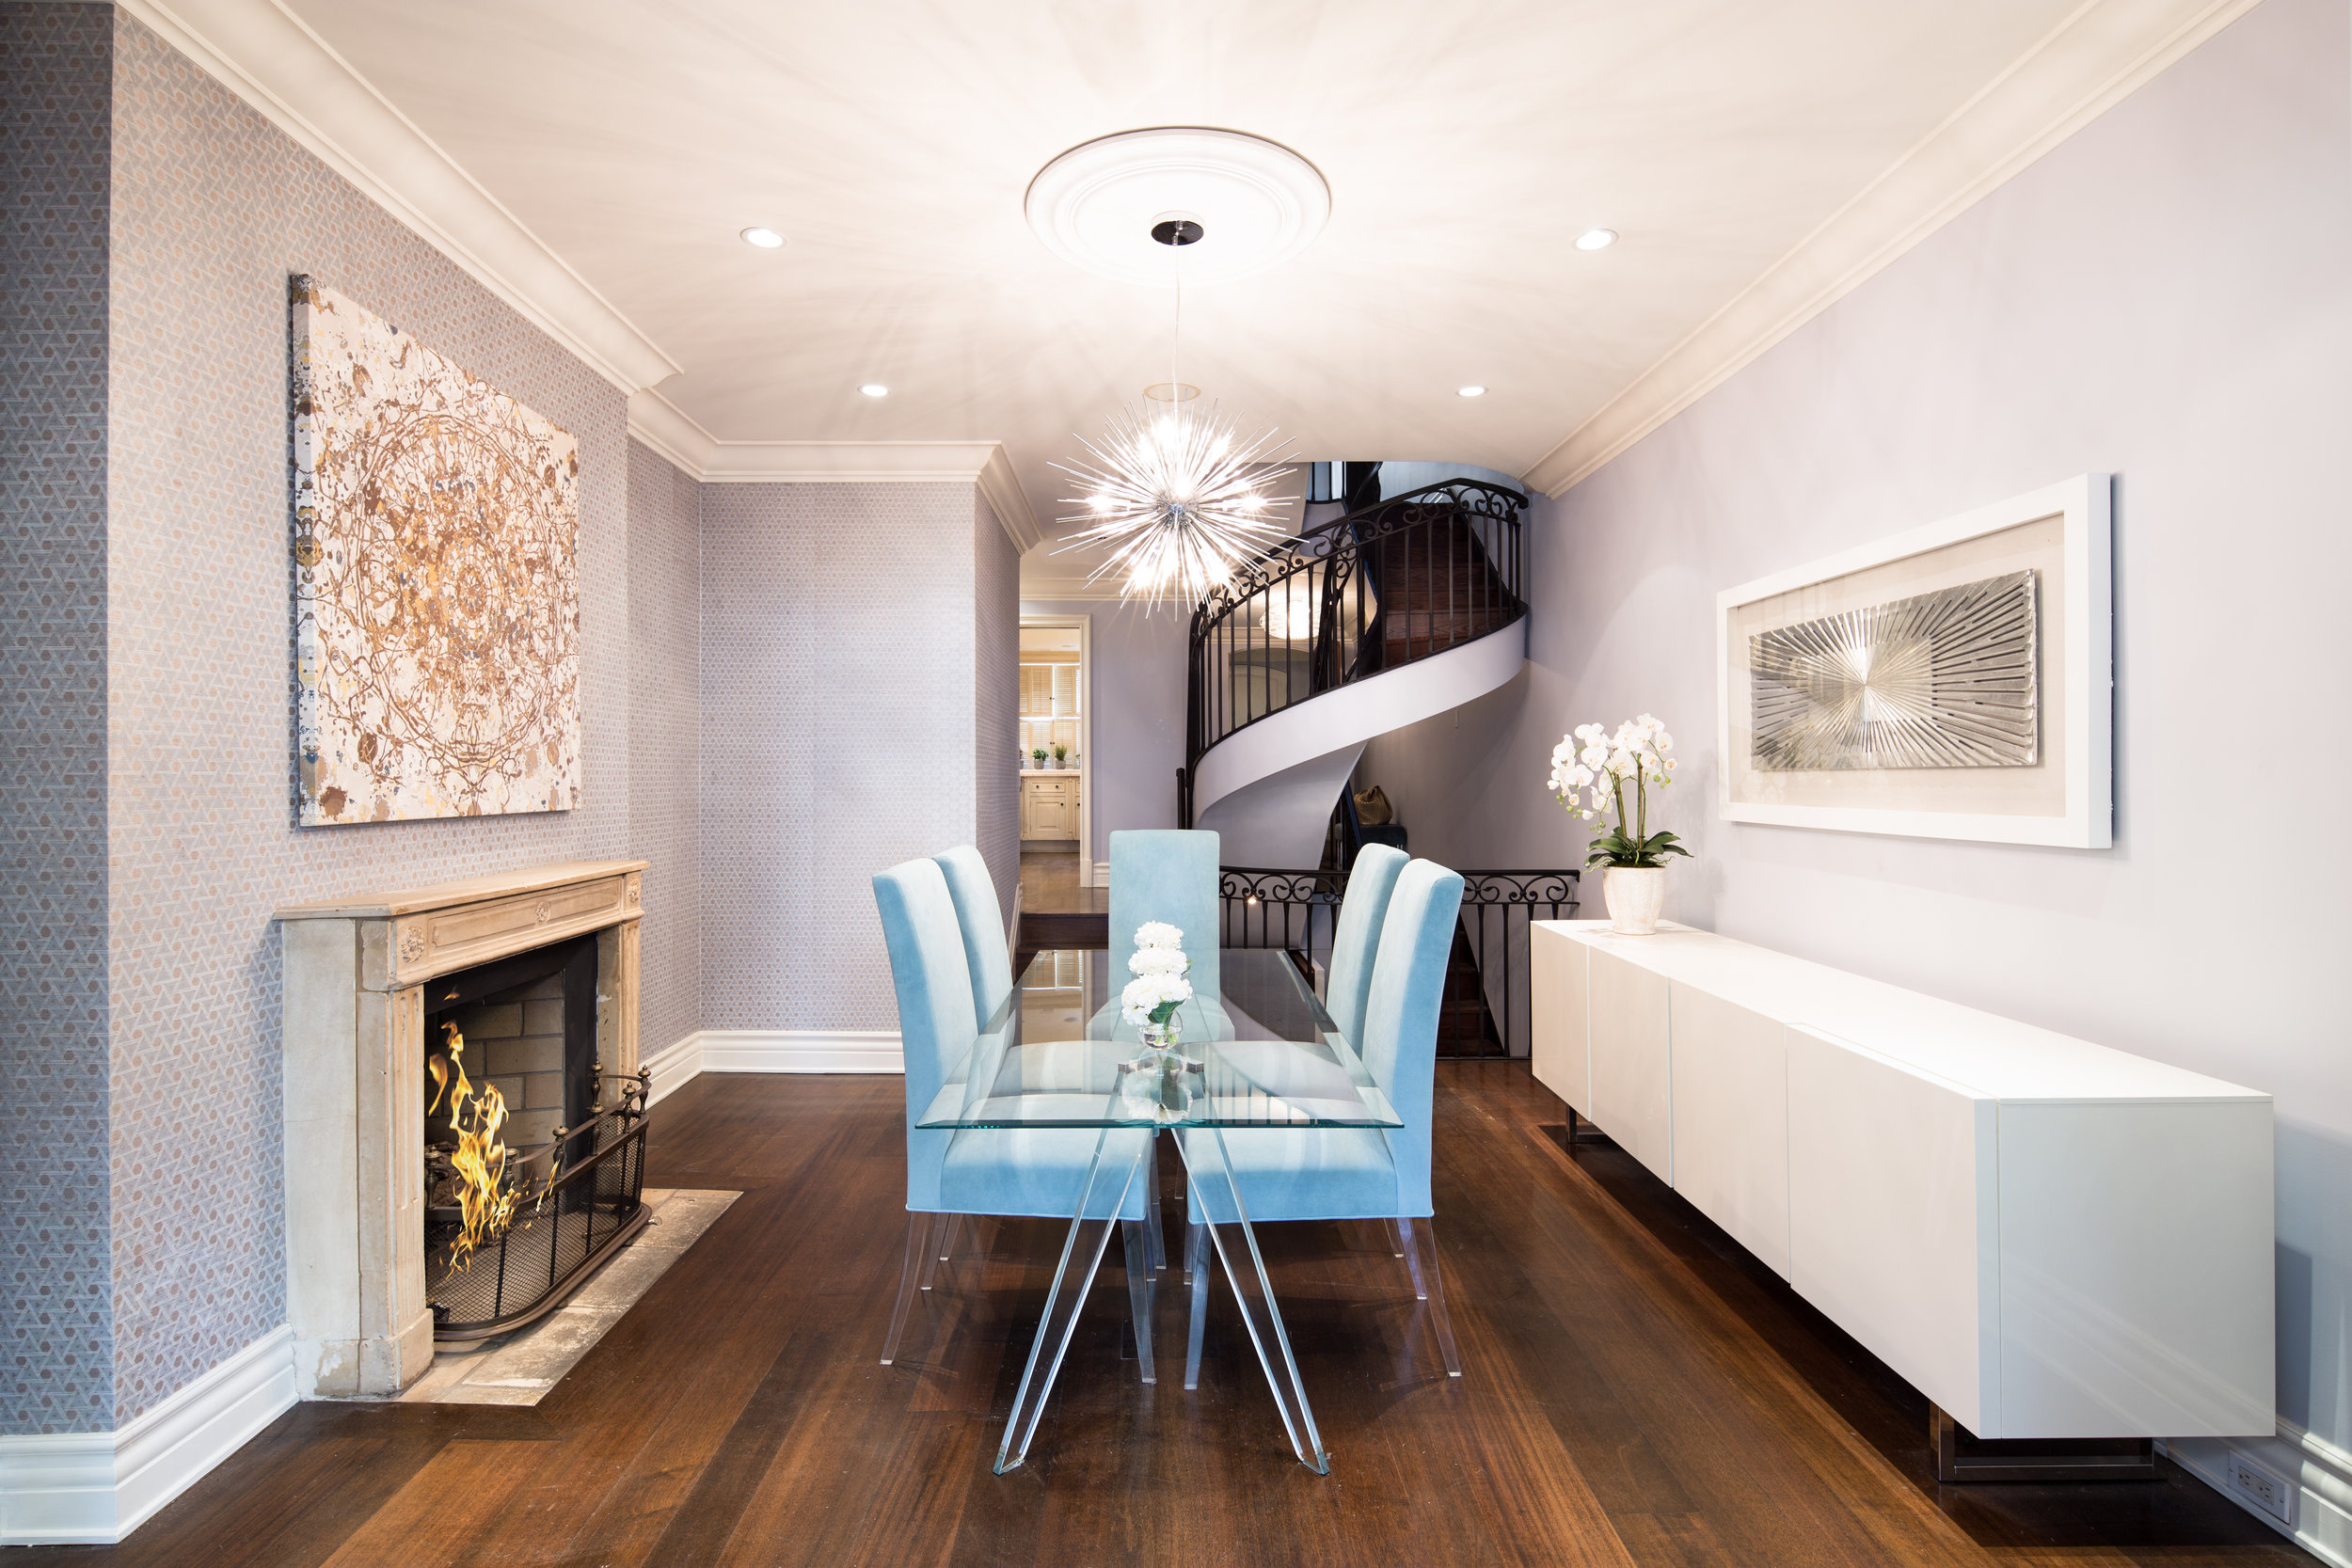 Interiors Photography - Fireplace Room